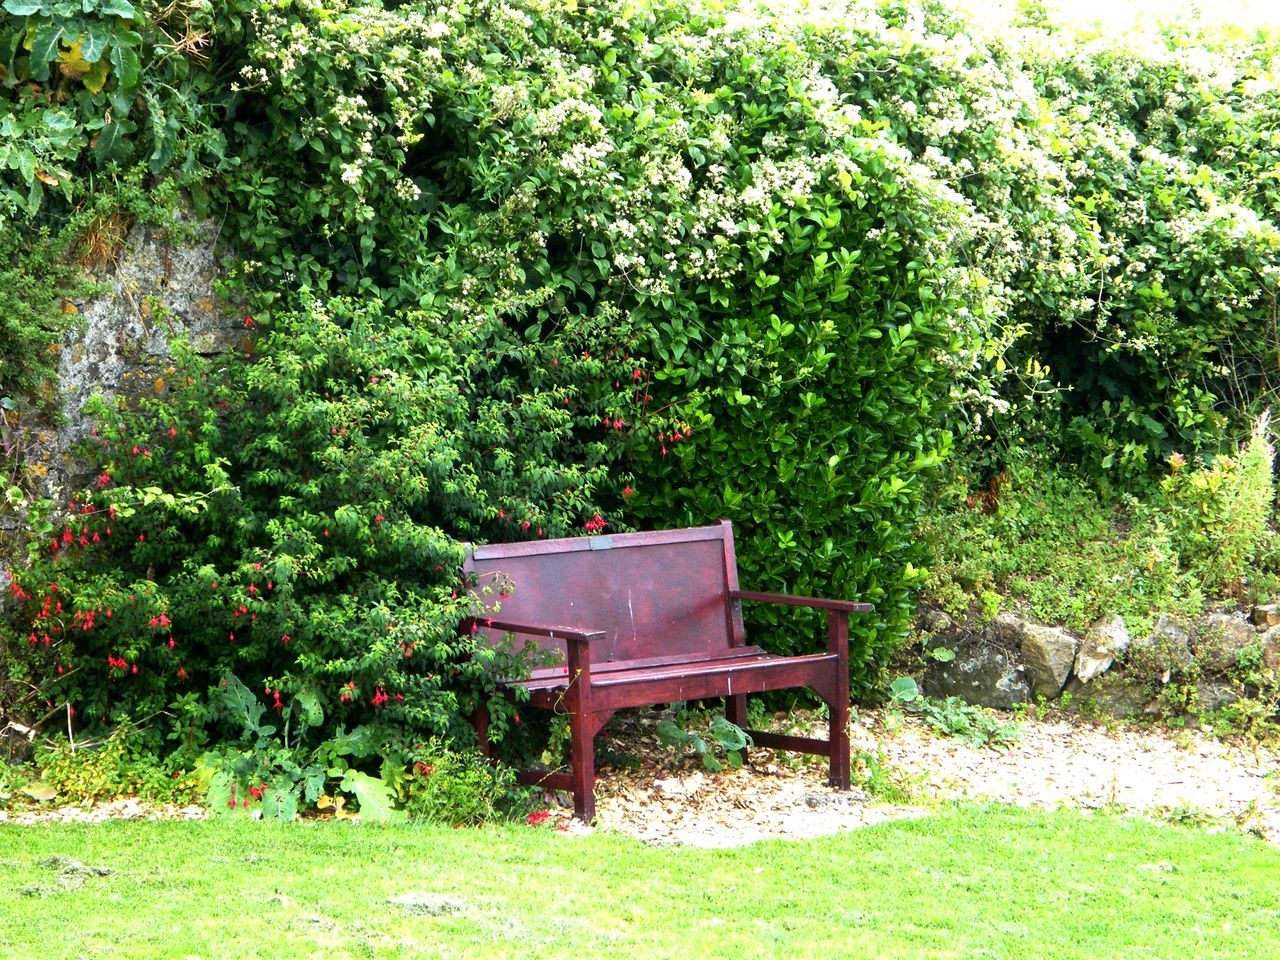 Beauty In Nature Chair Day Grass Green Color Growth Nature No People Outdoors Pembrokeshire Pembrokeshire Coast Pembrokeshire Coastal Path Plant Tenby Tree Garden Seat Garden Bench The Bench Seaside Garden